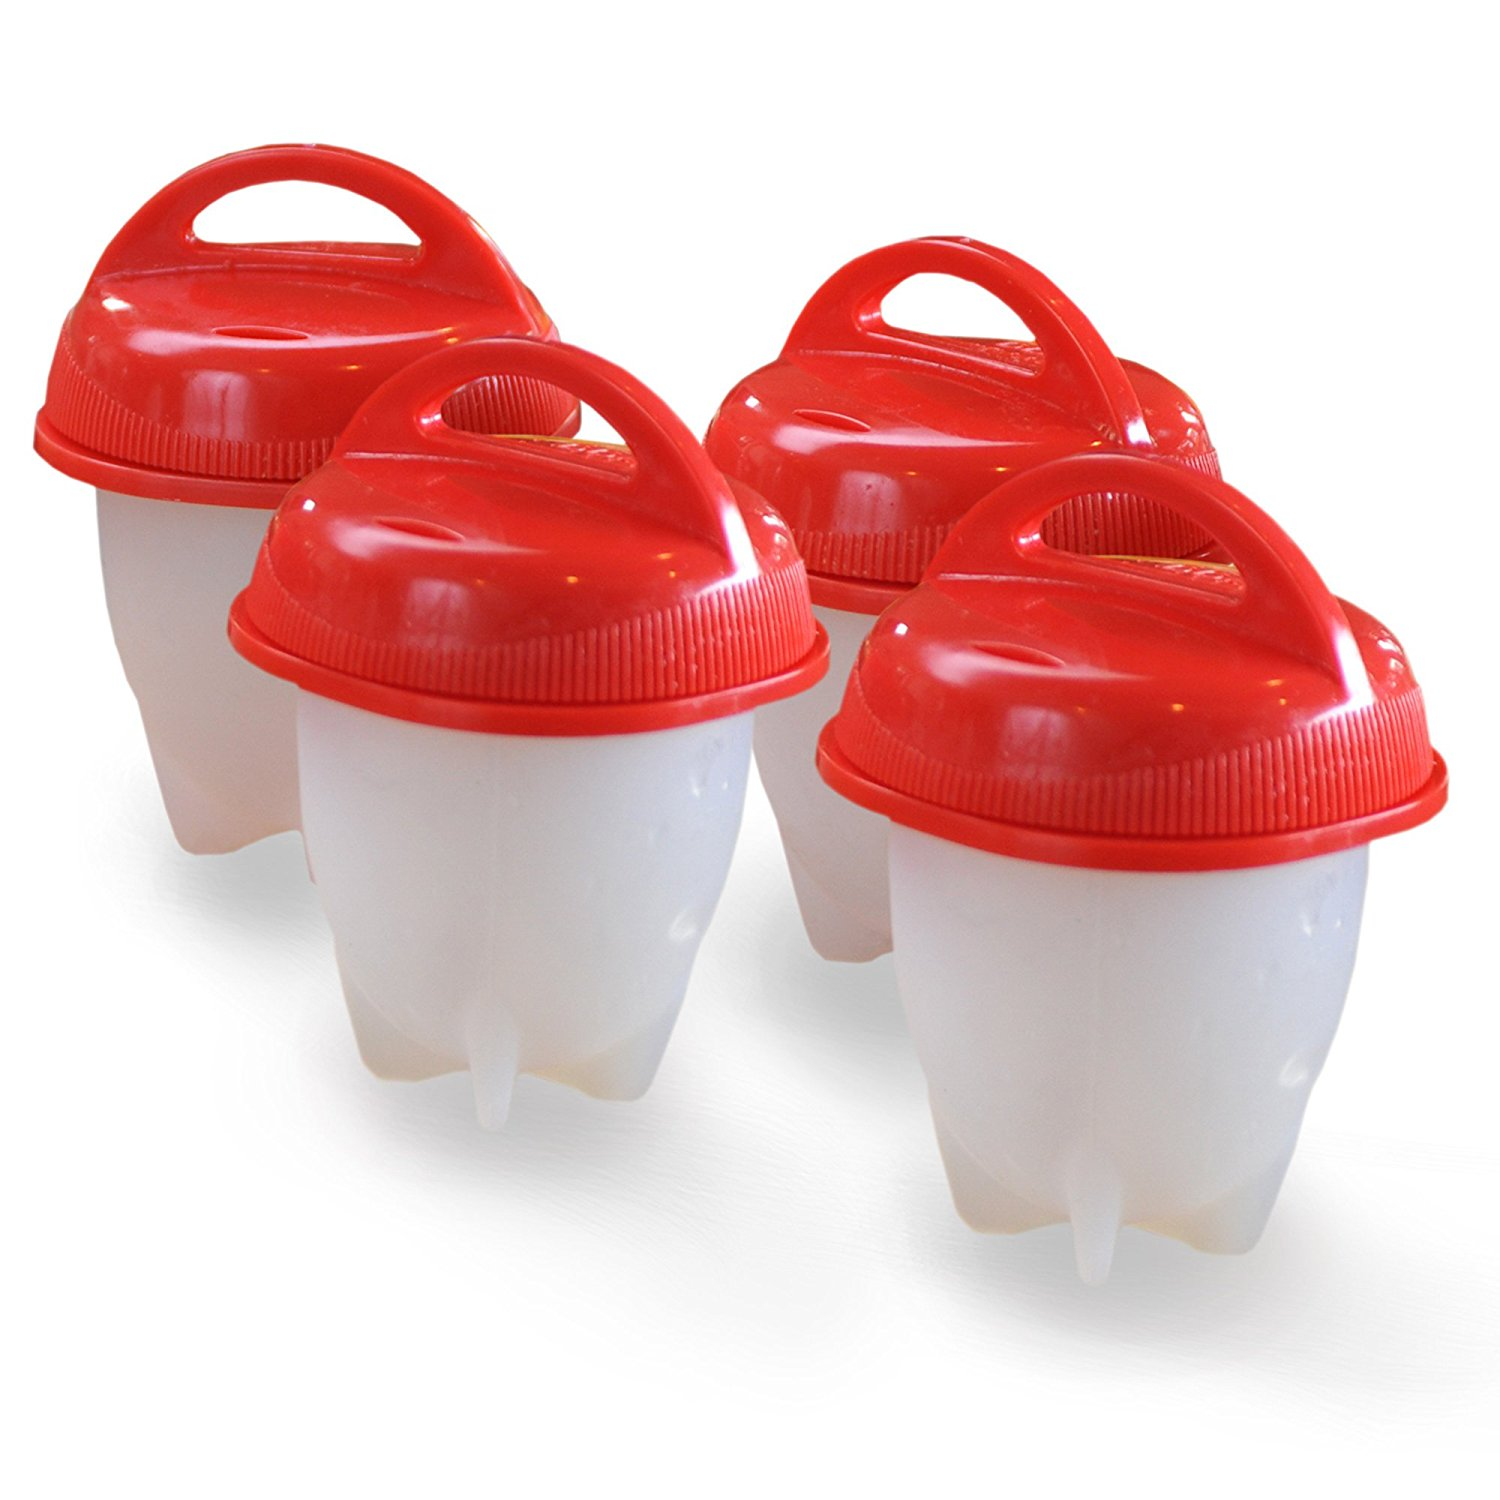 As Seen on TV Egglettes Hard Boiled Egg Maker, 4 count